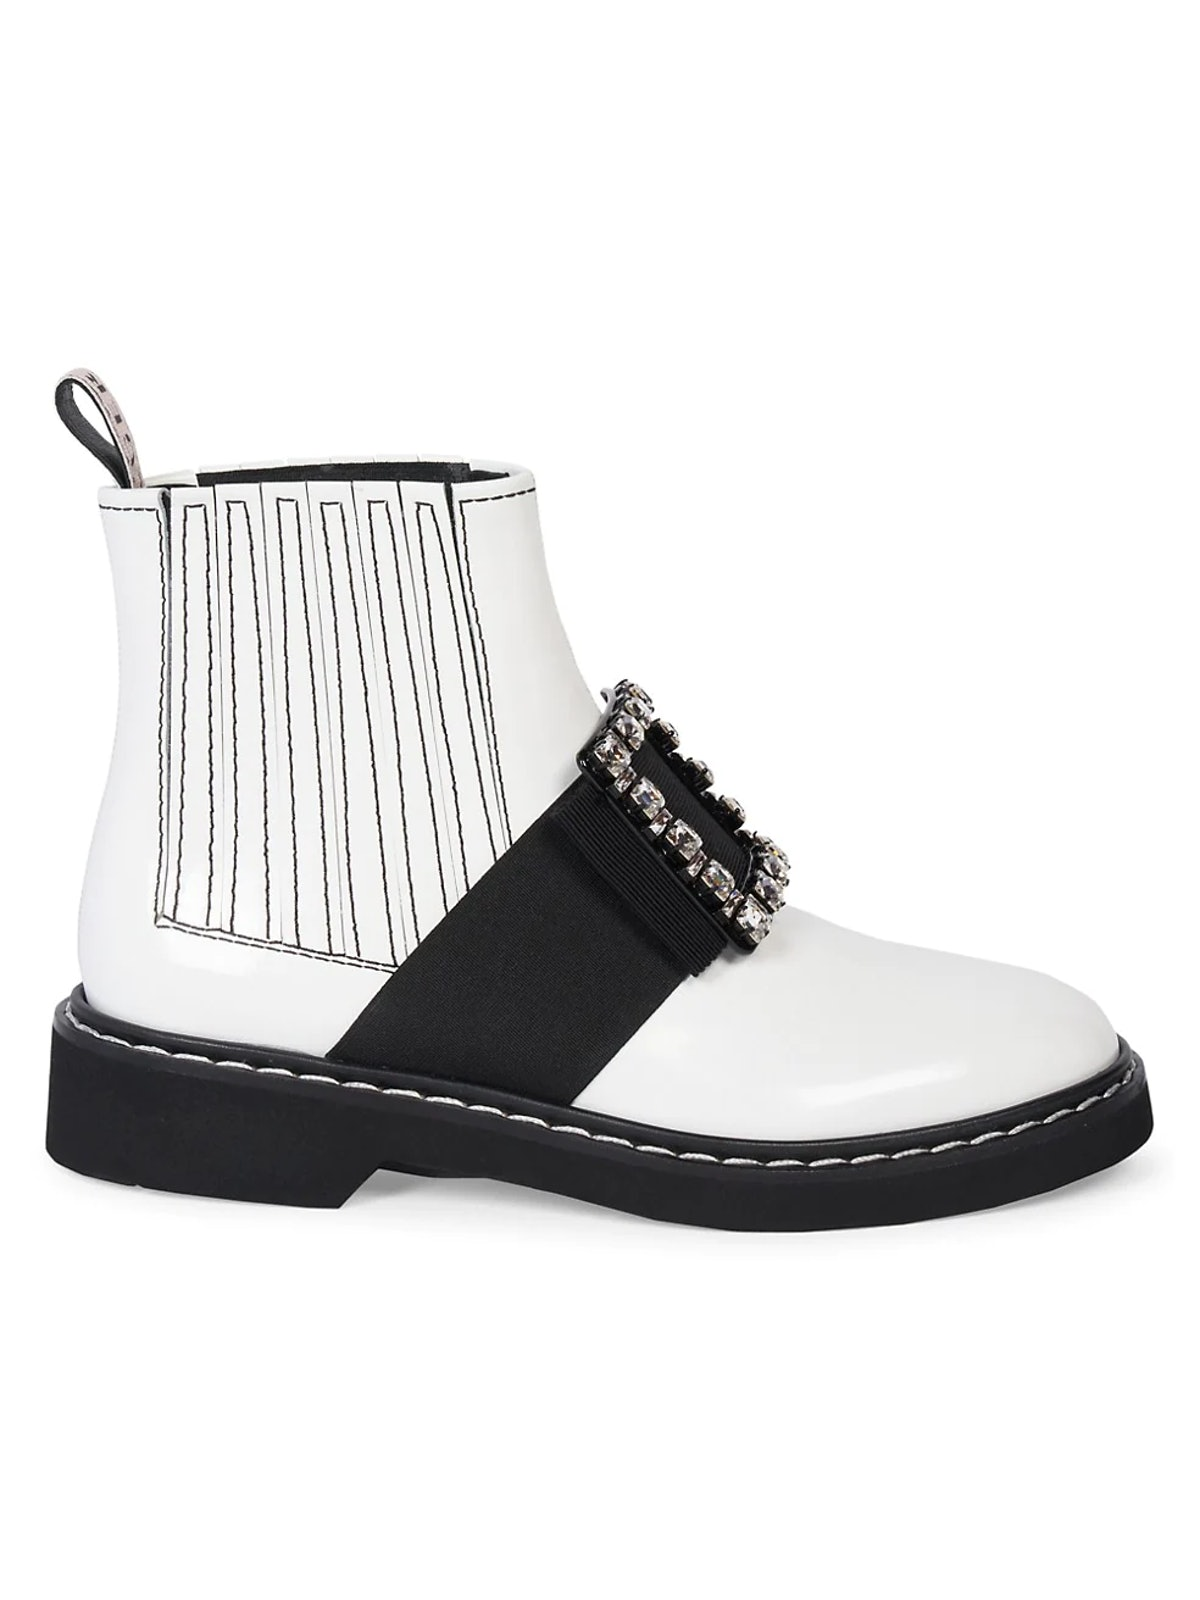 Viv Rangers Leather Chelsea Boots from Roger Vivier, available to shop on Saks Fifth Avenue.